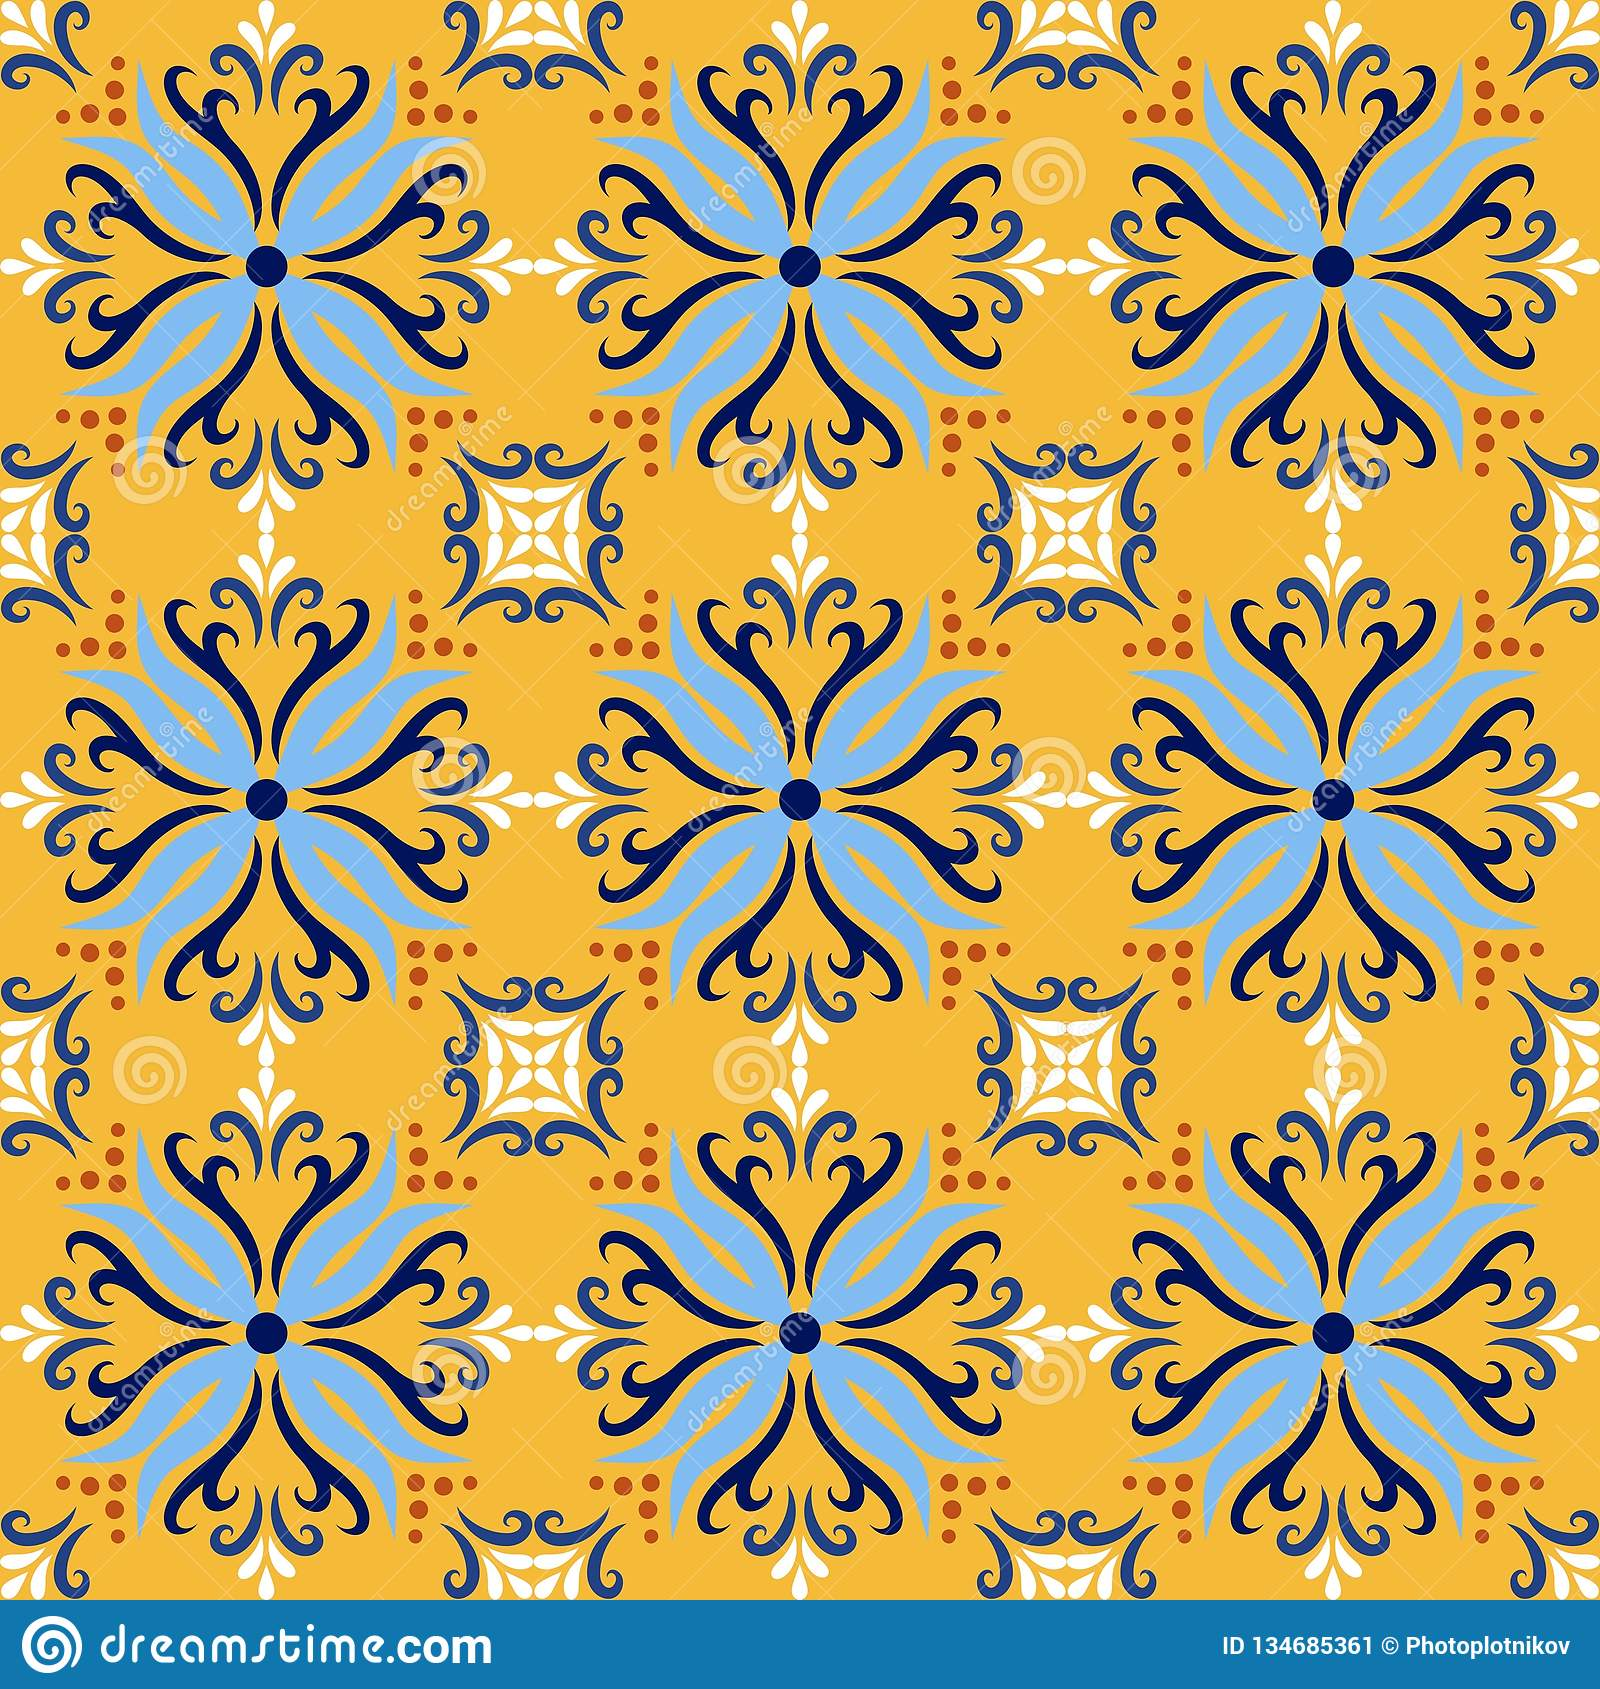 Yellow italian ceramic tile seamless pattern backgrounds. Traditional ornate talavera decorative color tiles azulejos